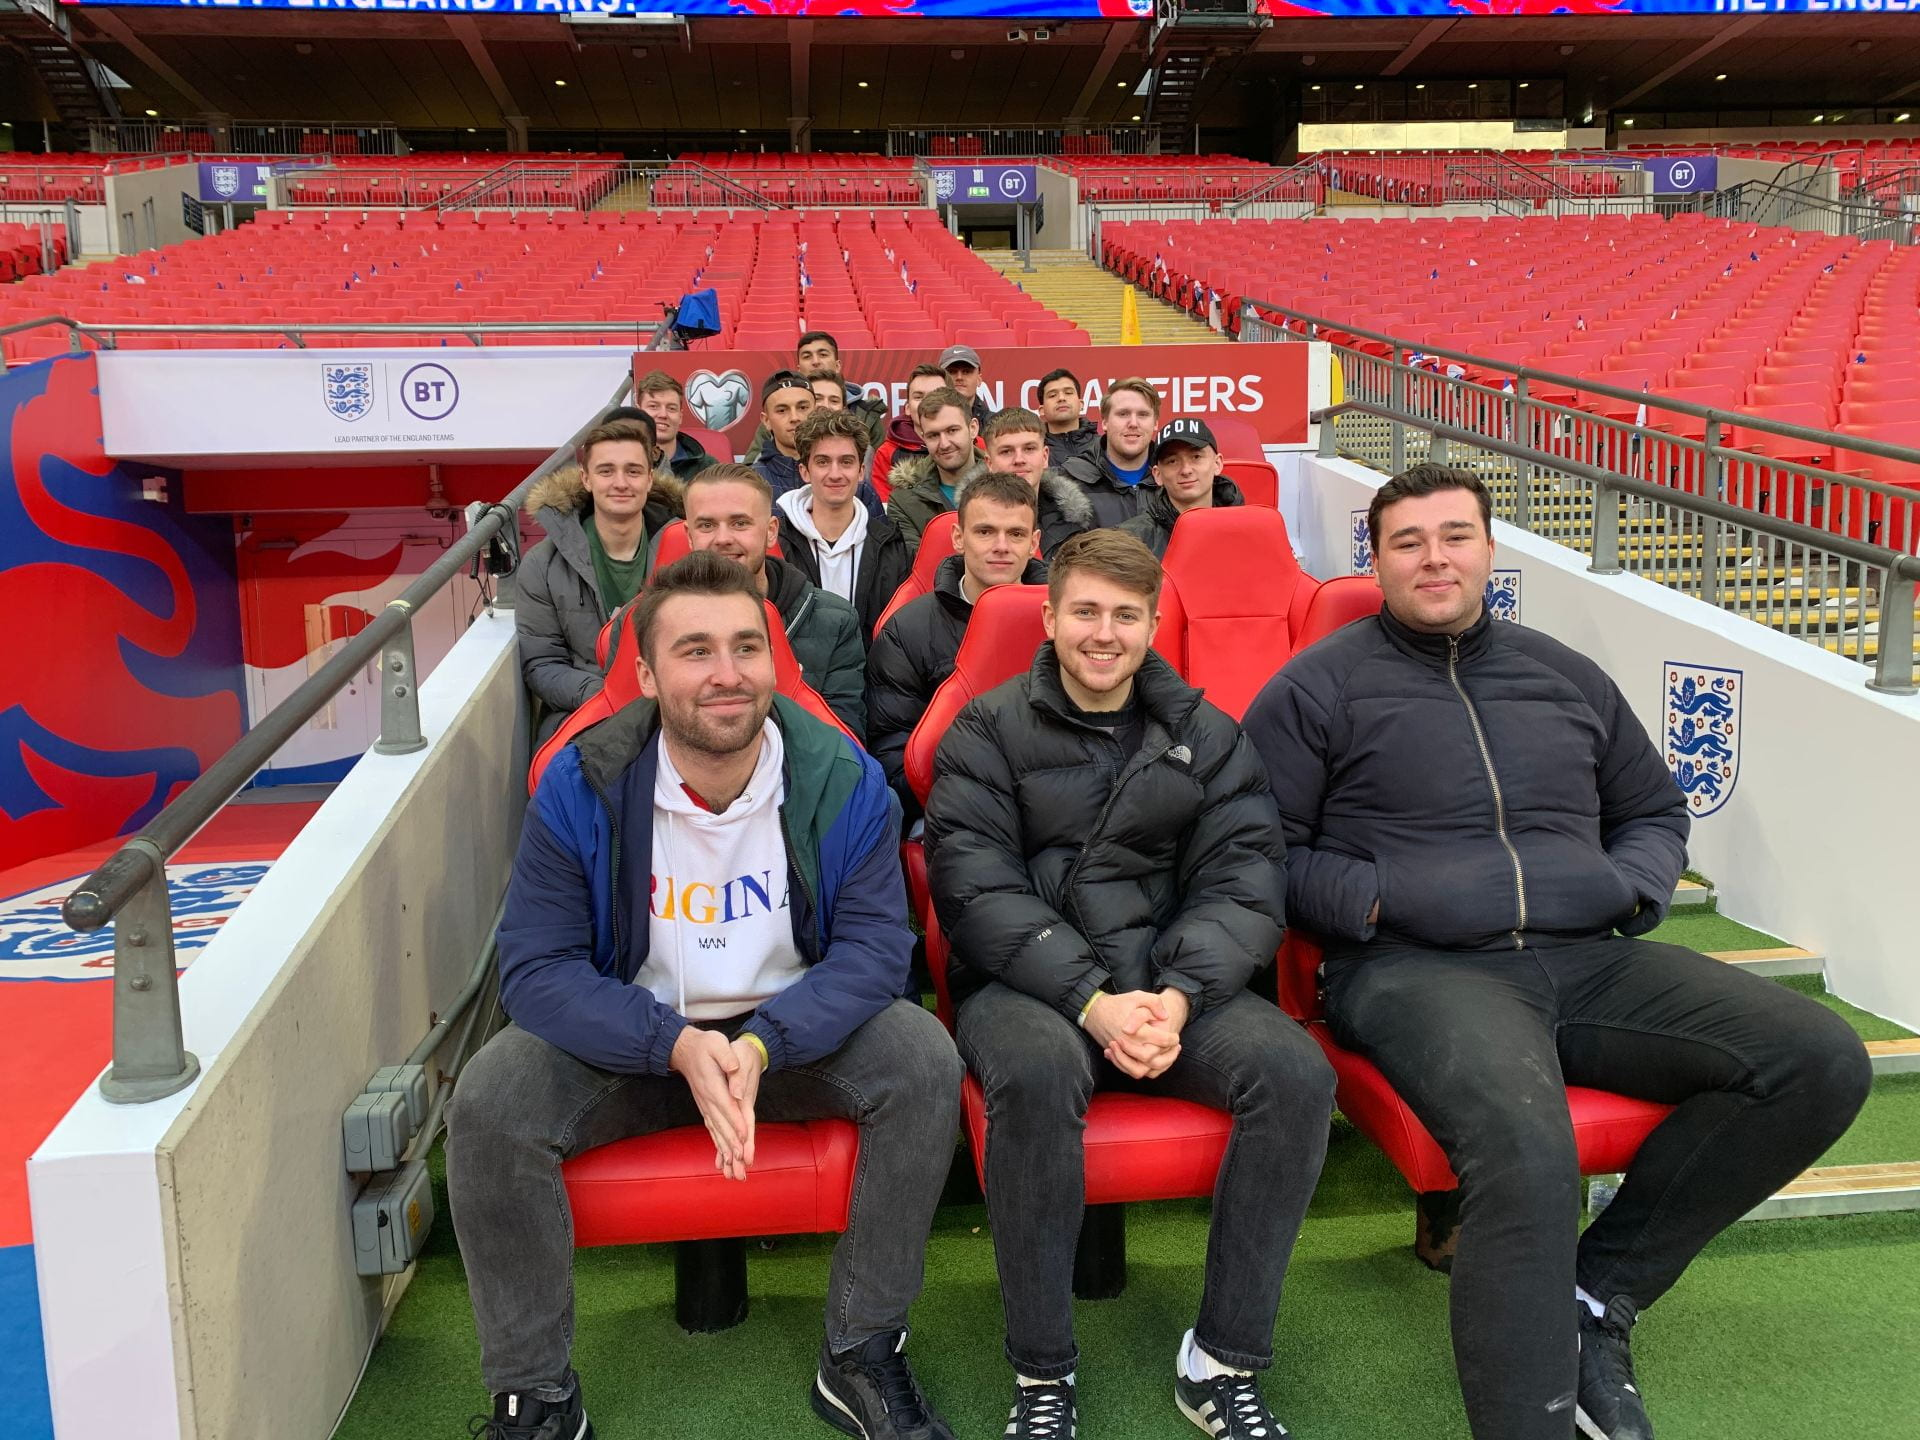 students in the stands at Wembley